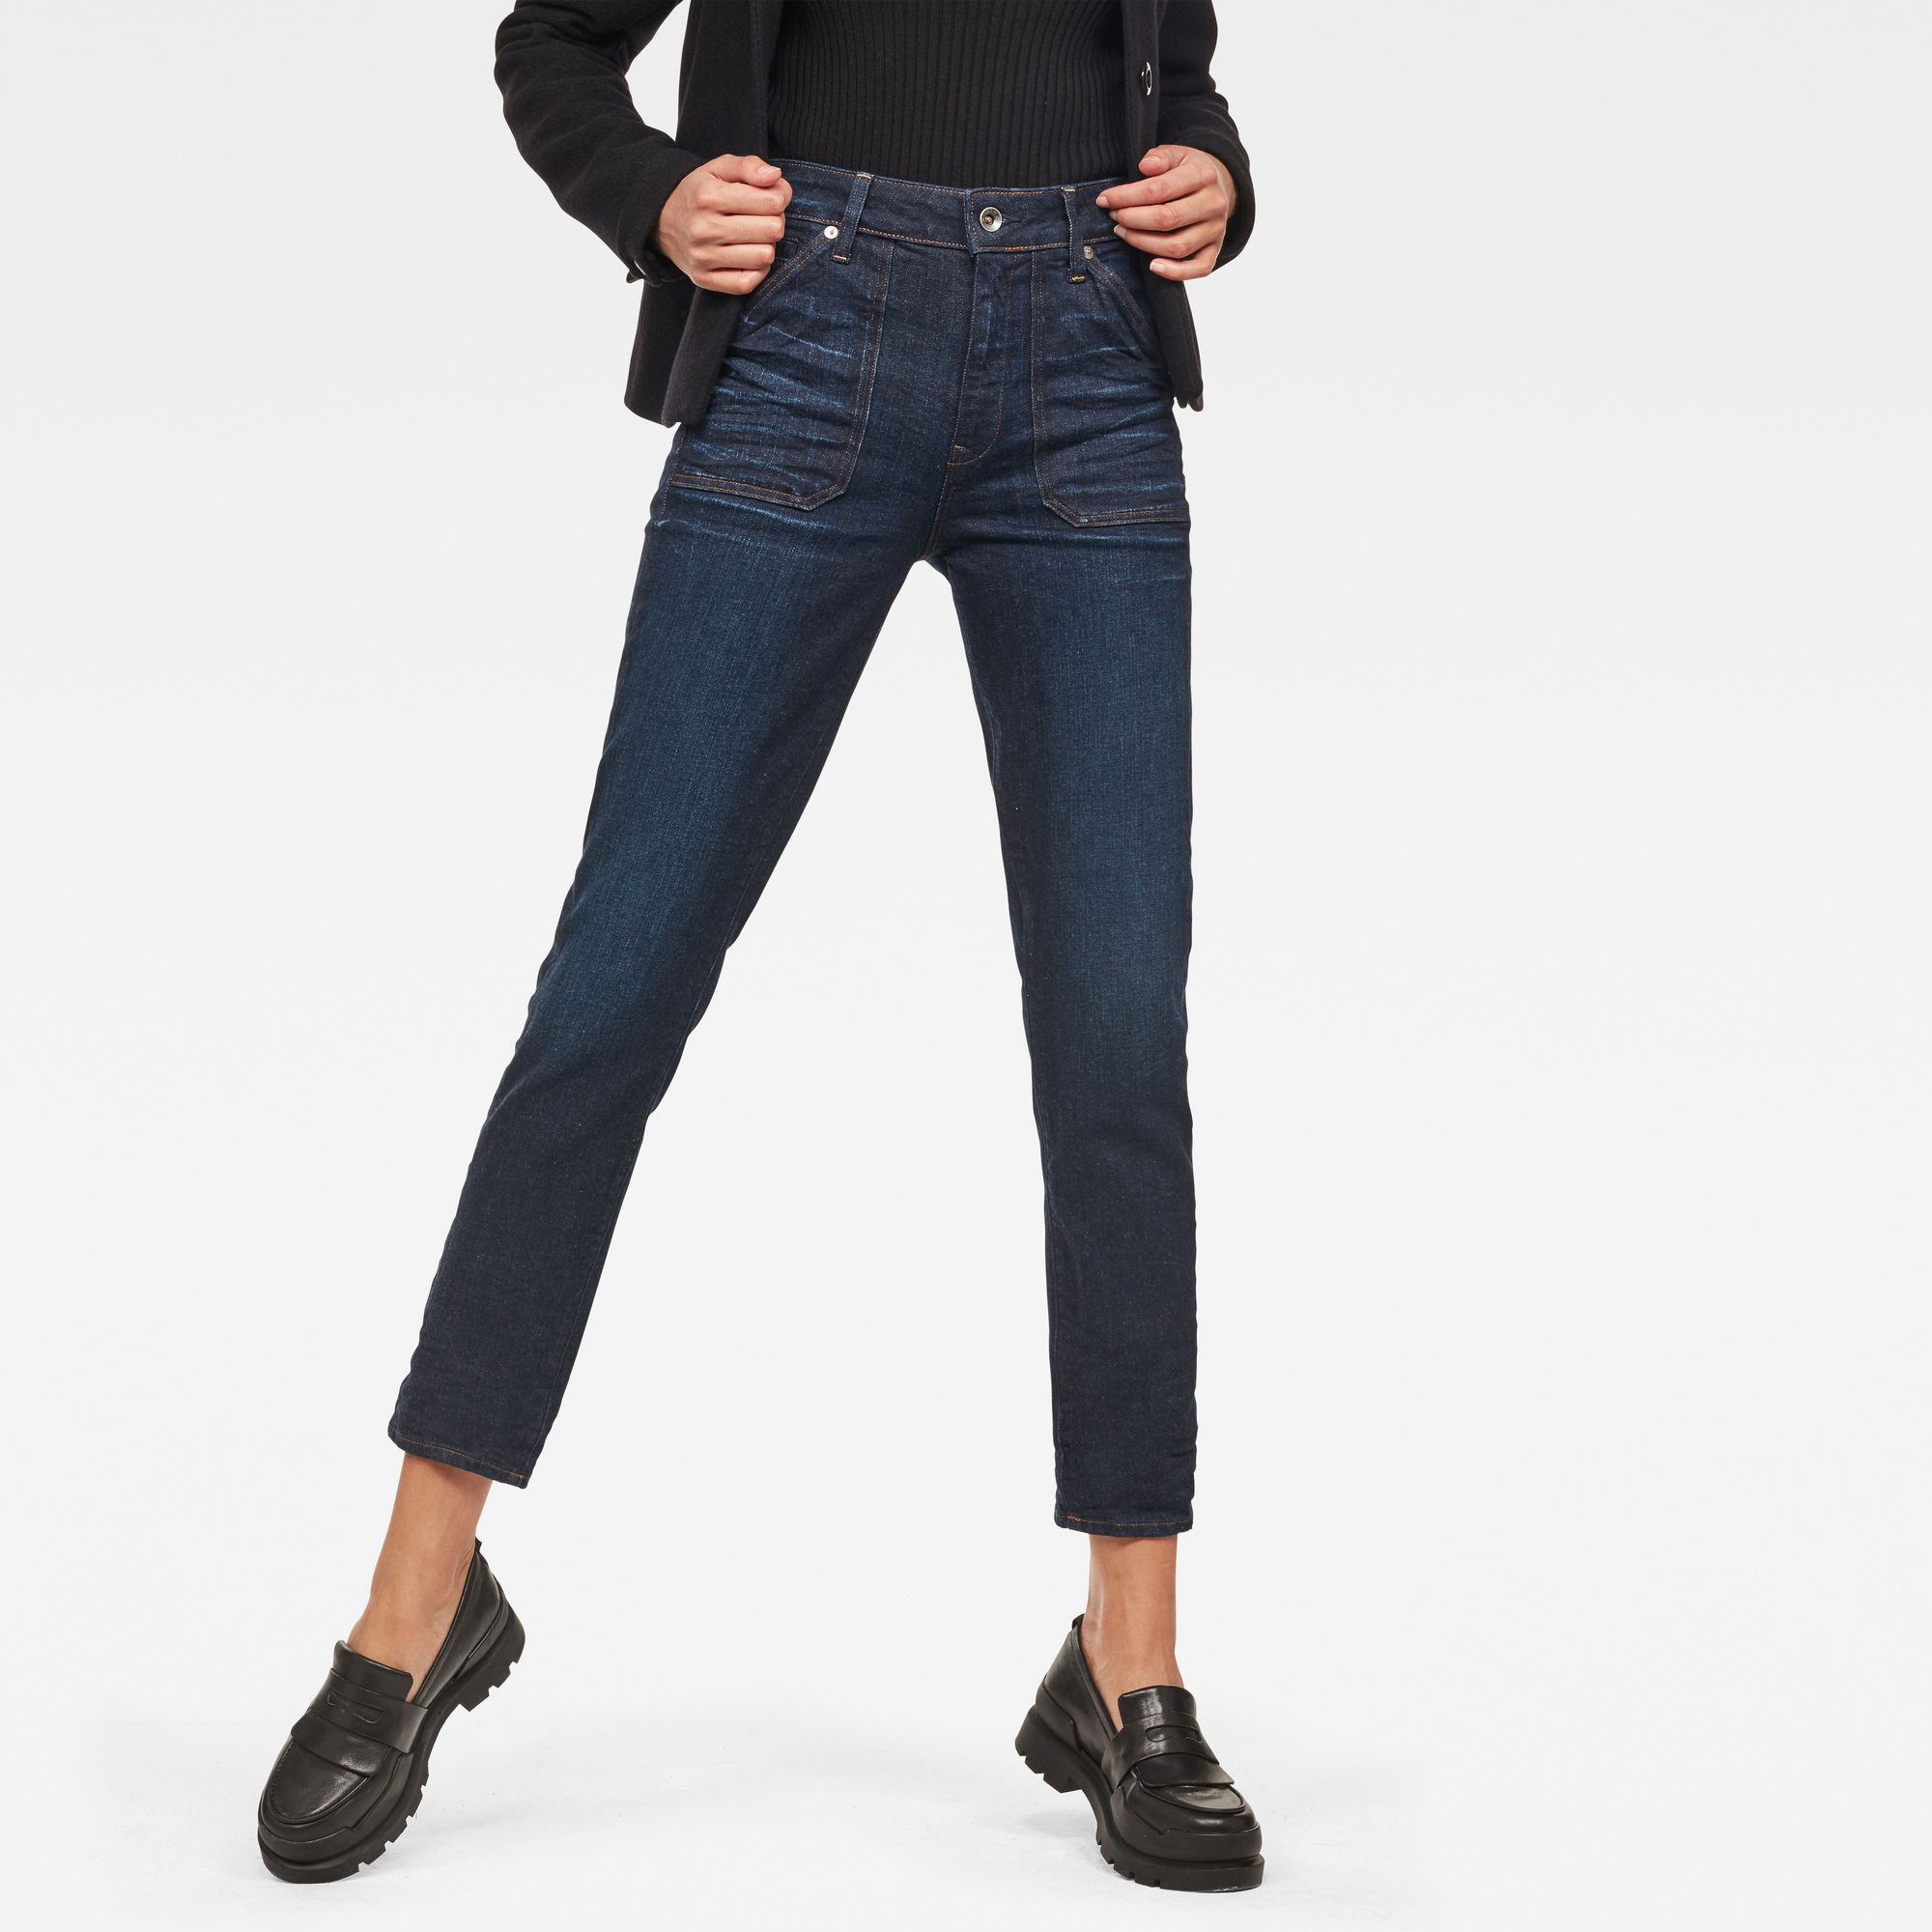 Image of G Star Raw Midge Worker High Waist Straight Ankle Jeans